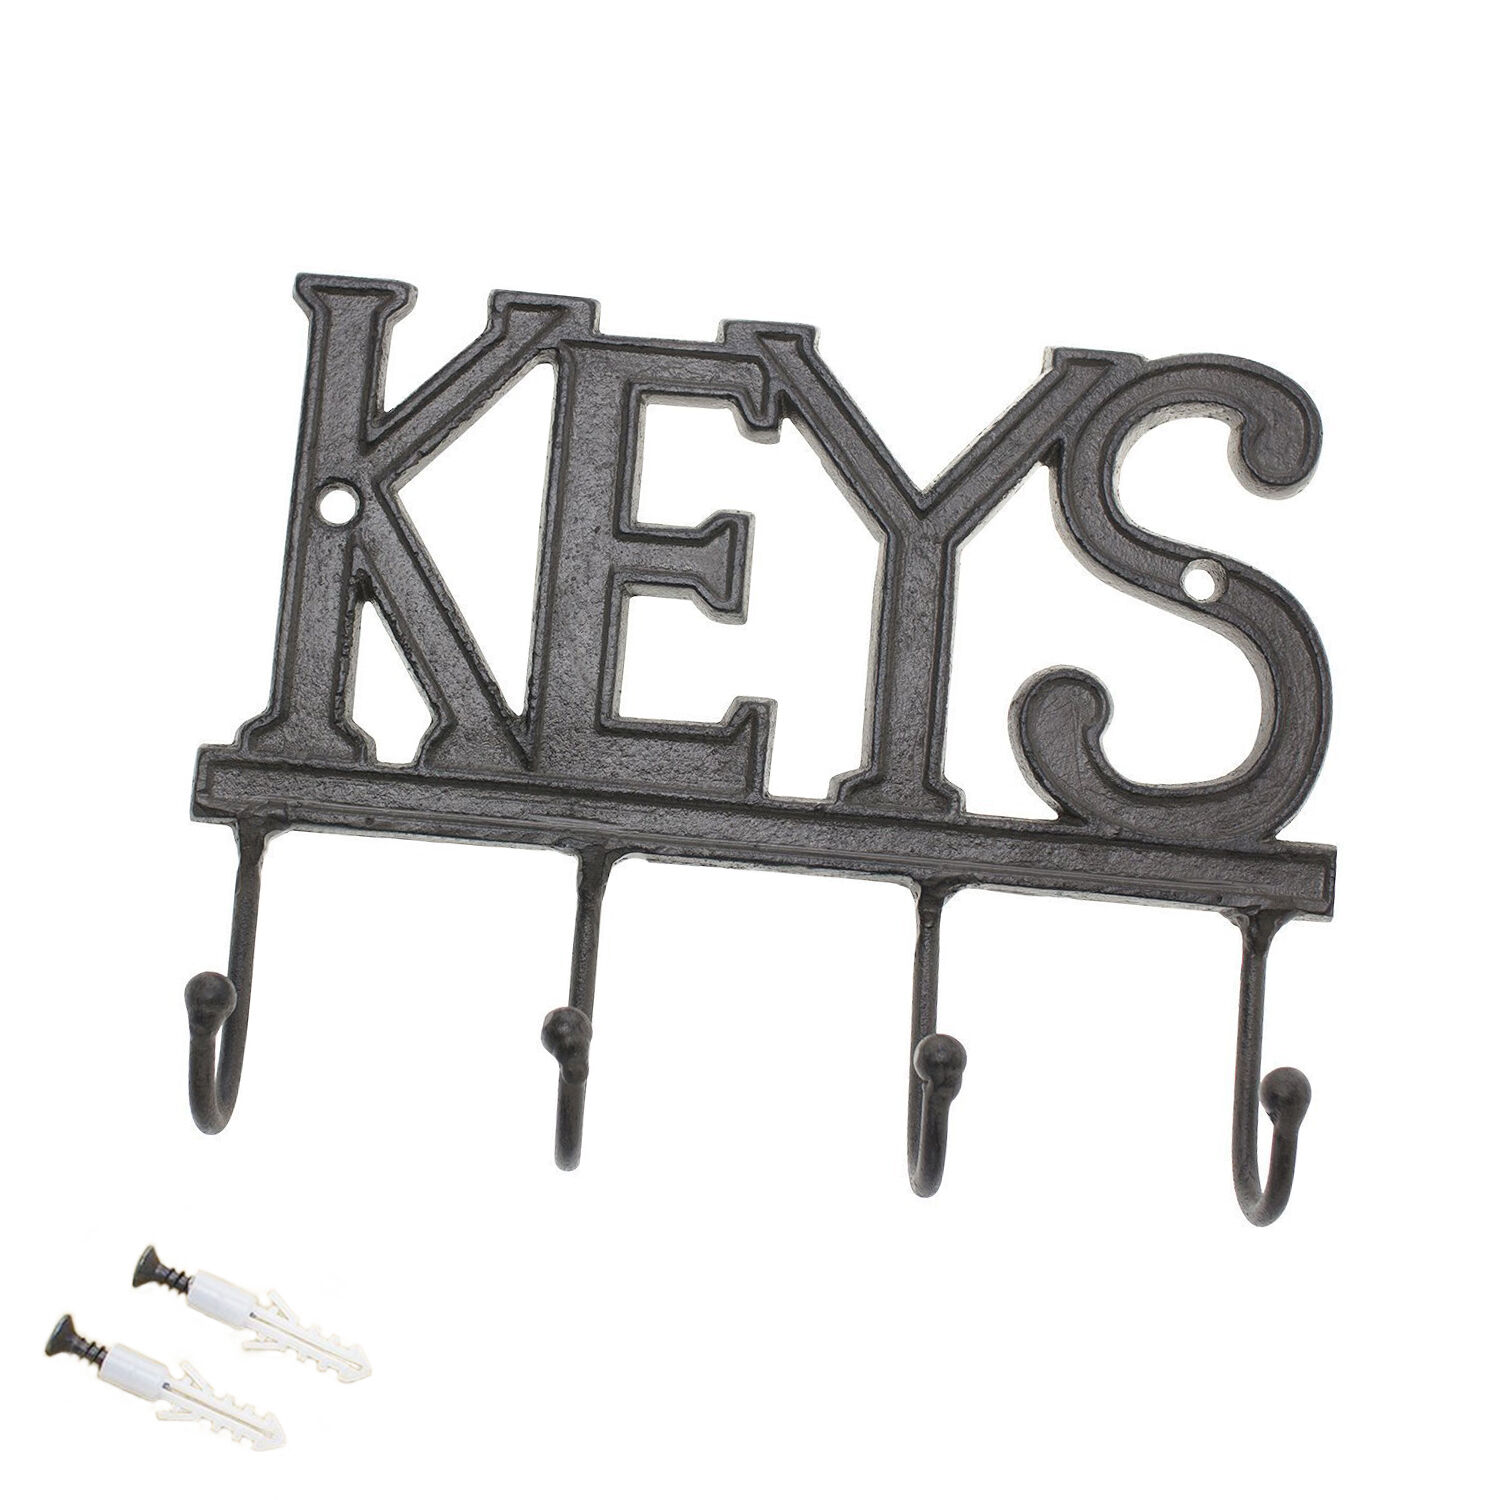 Comfify Key Holder - Keys - Wall Mounted Key Hook - Rustic W